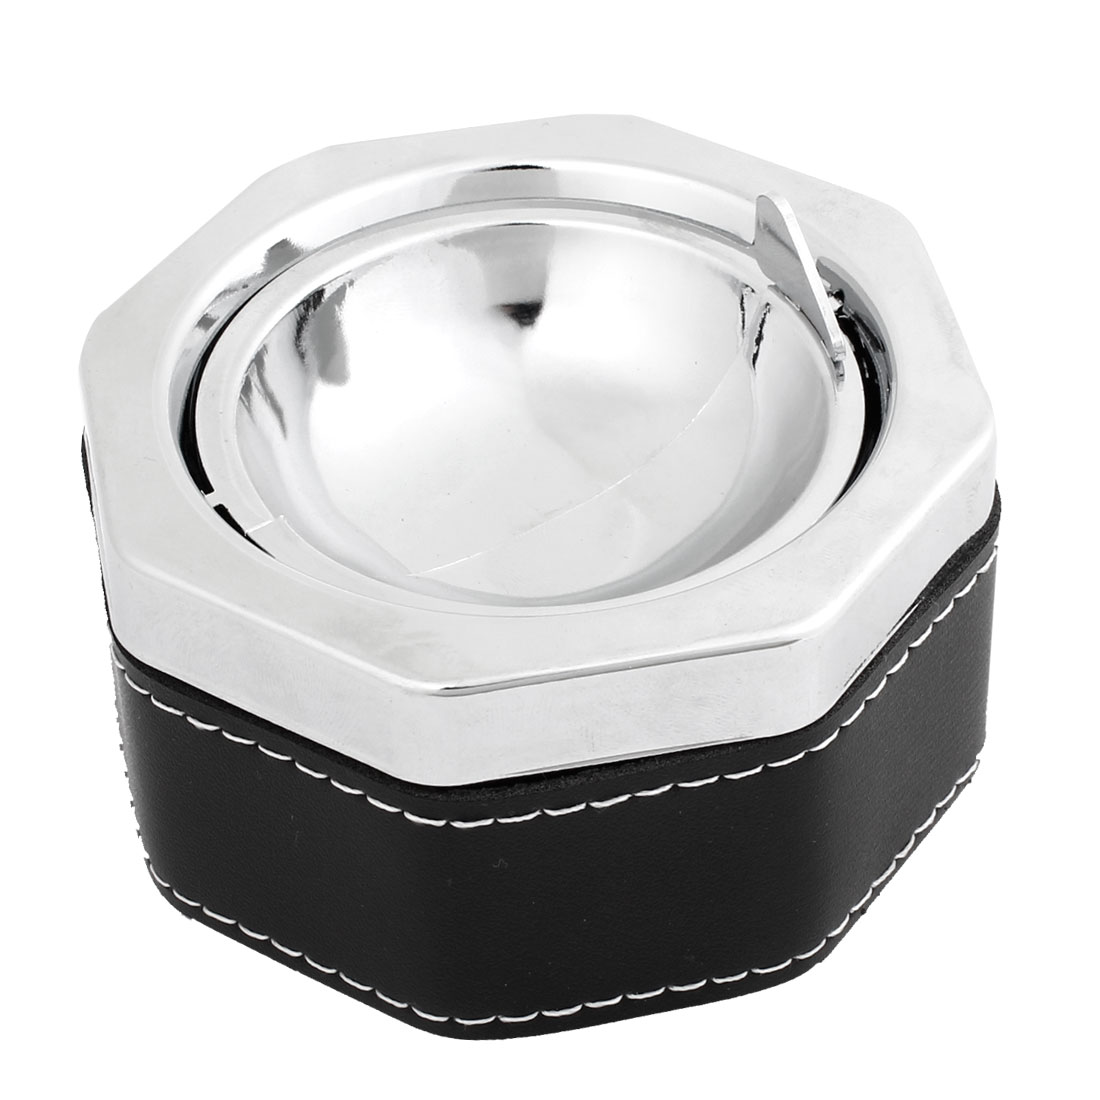 Black Faux Leather Silver Tone Metal Car Smoking Cigarette Ashtray Holder